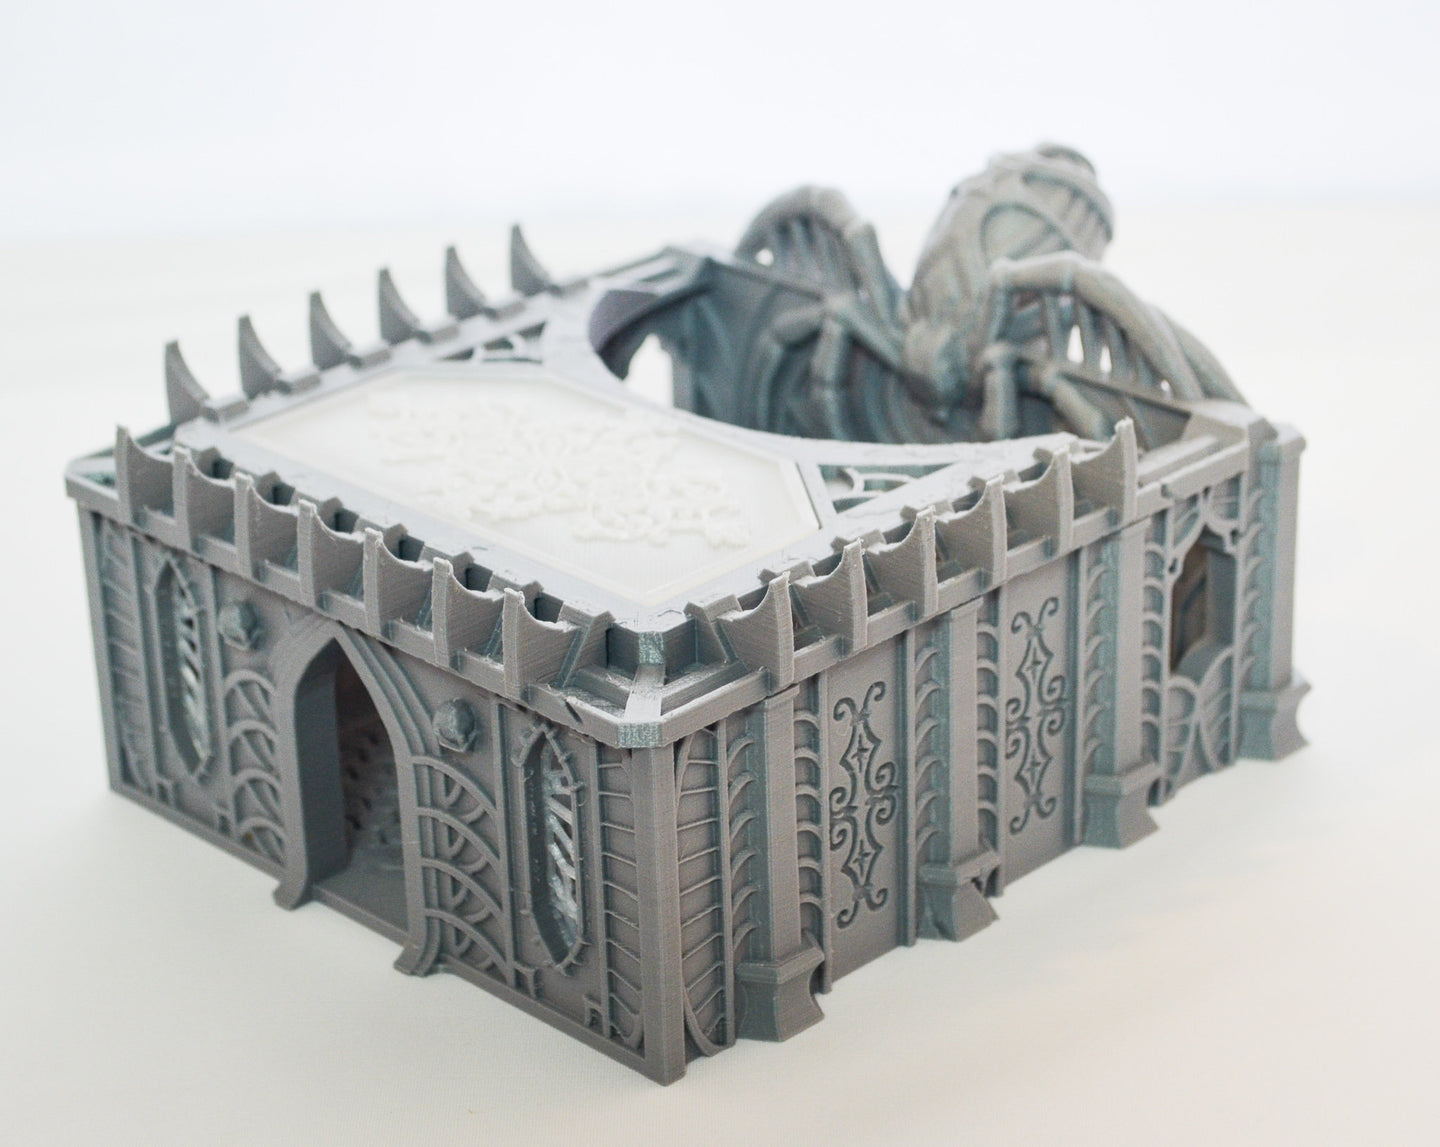 Skyless Realms Dark Elf Unholy Chapel - 15mm 28mm 32mm Wargaming Terrain D&D, DnD, Pathfinder, SW Legion, Warhammer, 40k